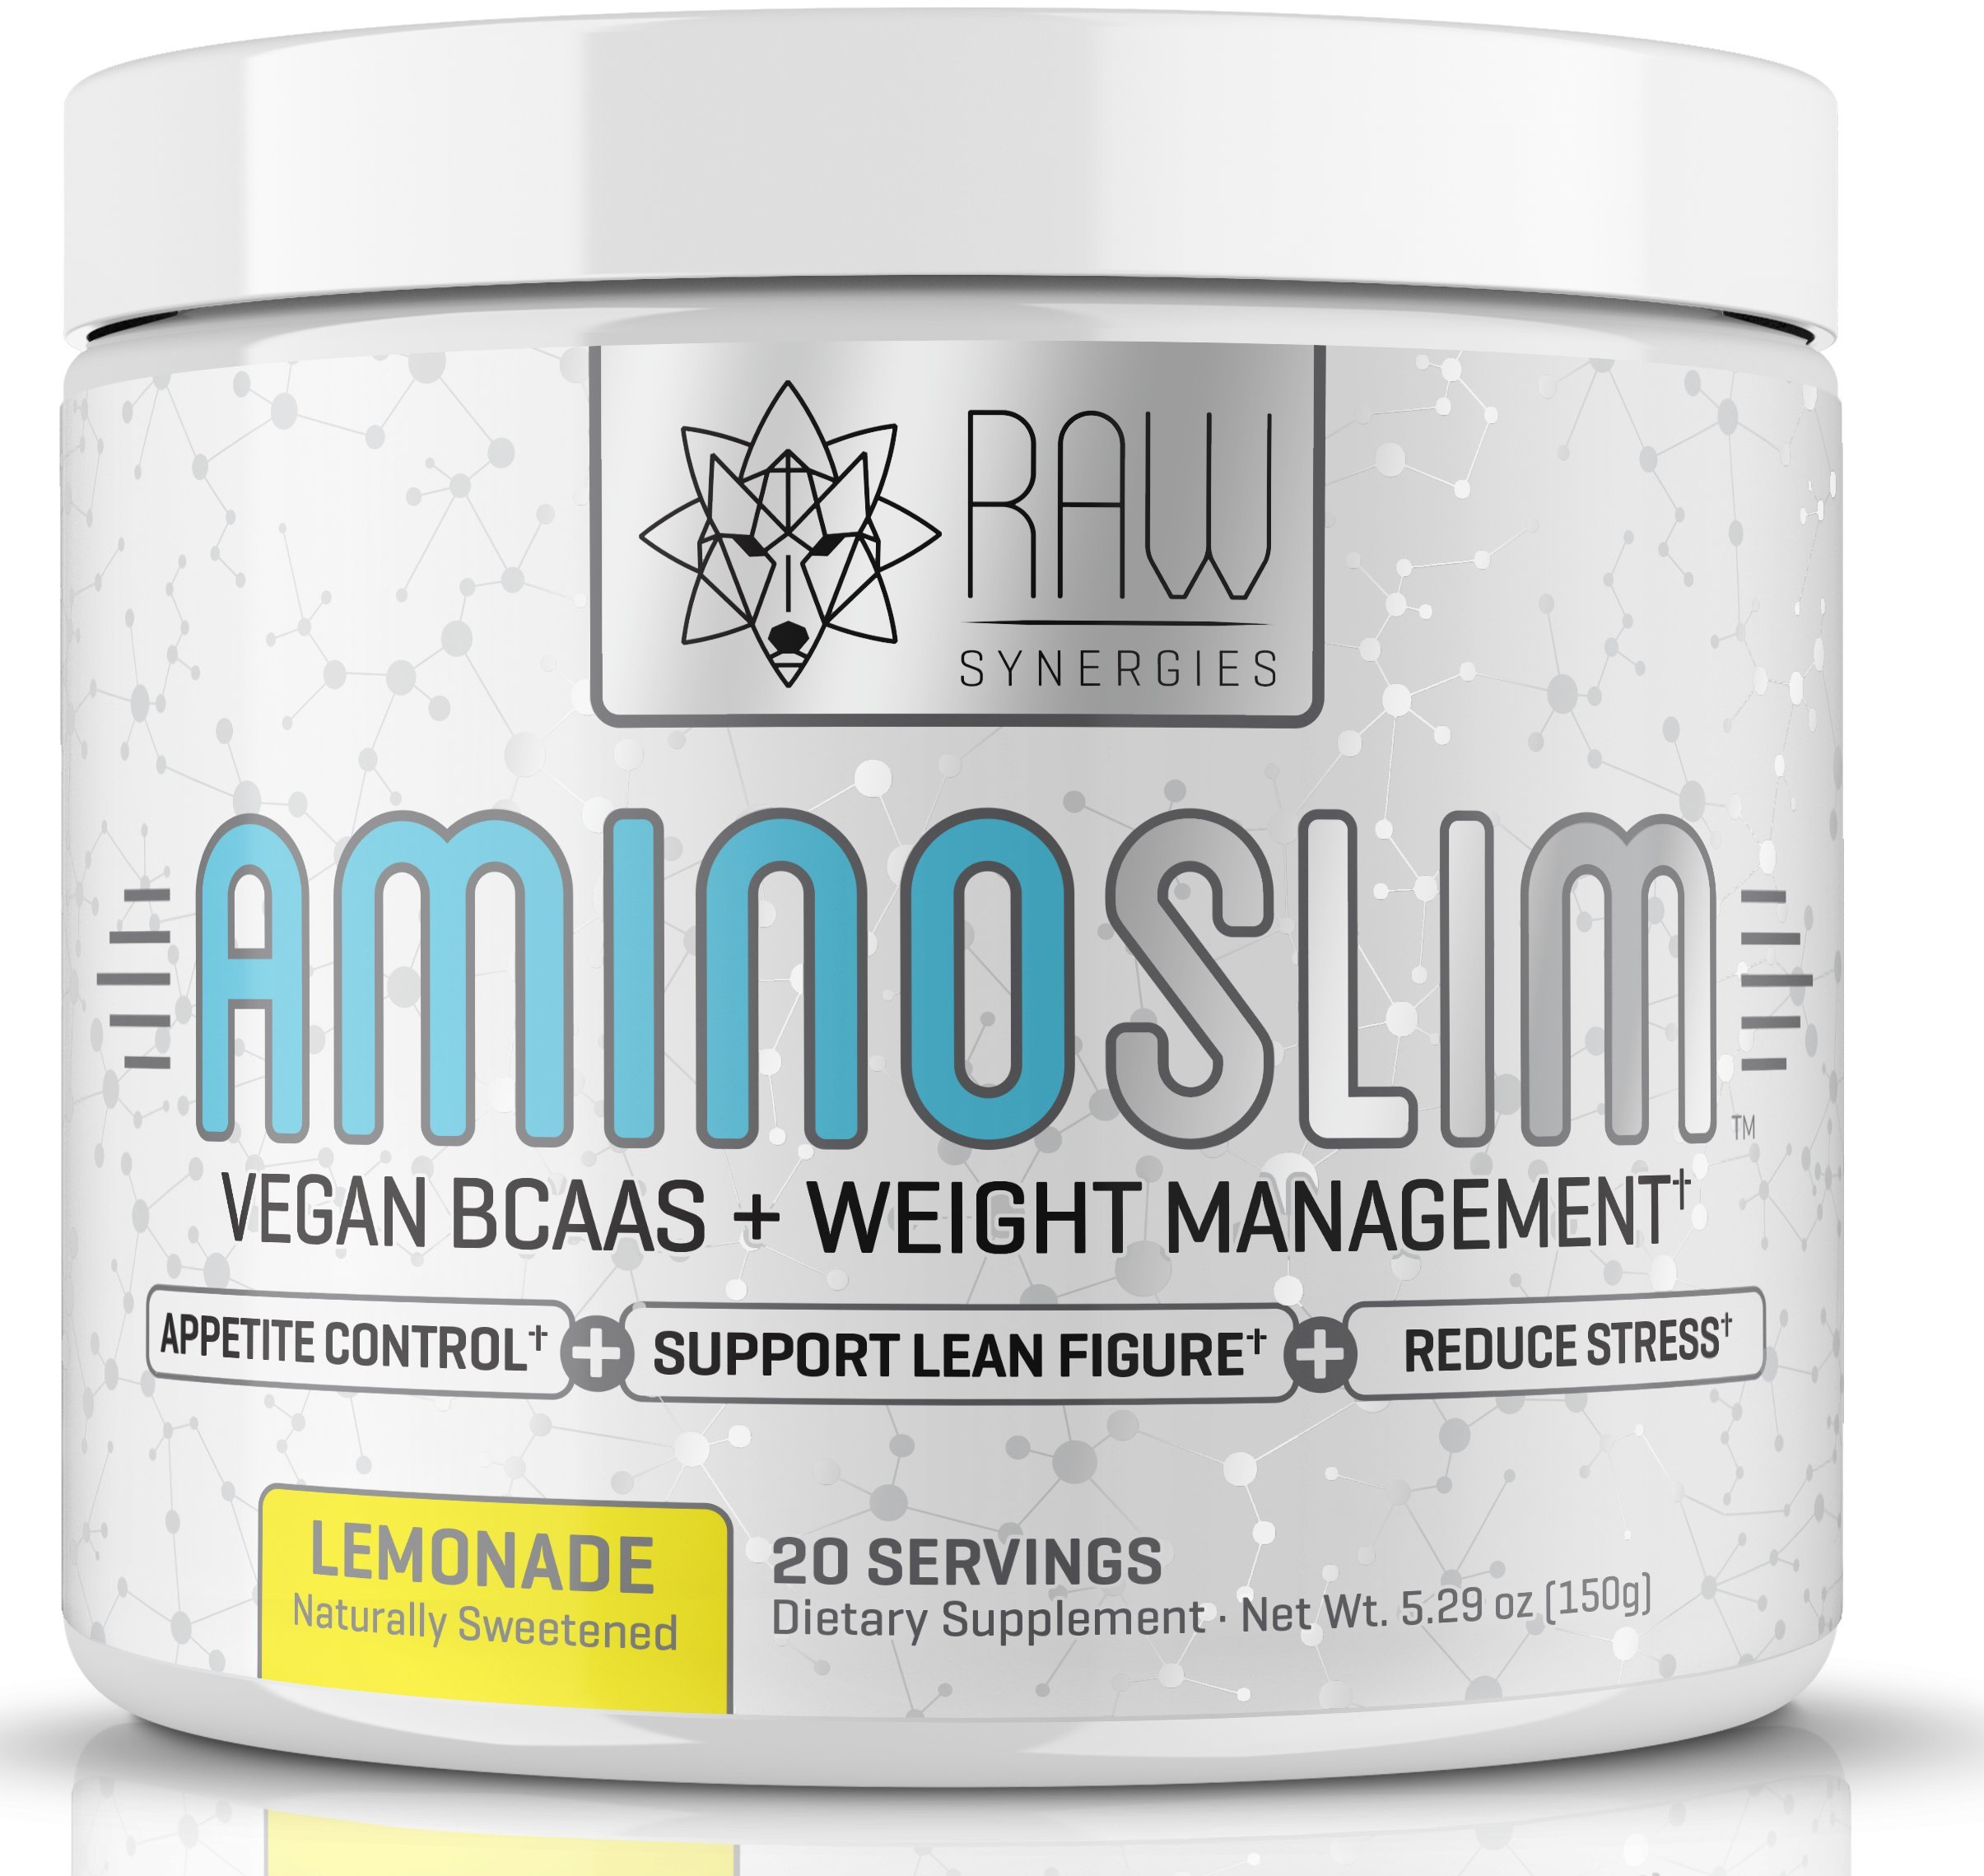 Amino Slim - Slimming BCAA Weight Loss Drink for Women, Vegan Amino Acids & L-Glutamine Powder for Post Workout Recovery & Fat Burning | Daily Appetite Suppressant, Metabolism Booster & Stress Relief by RAW Synergies